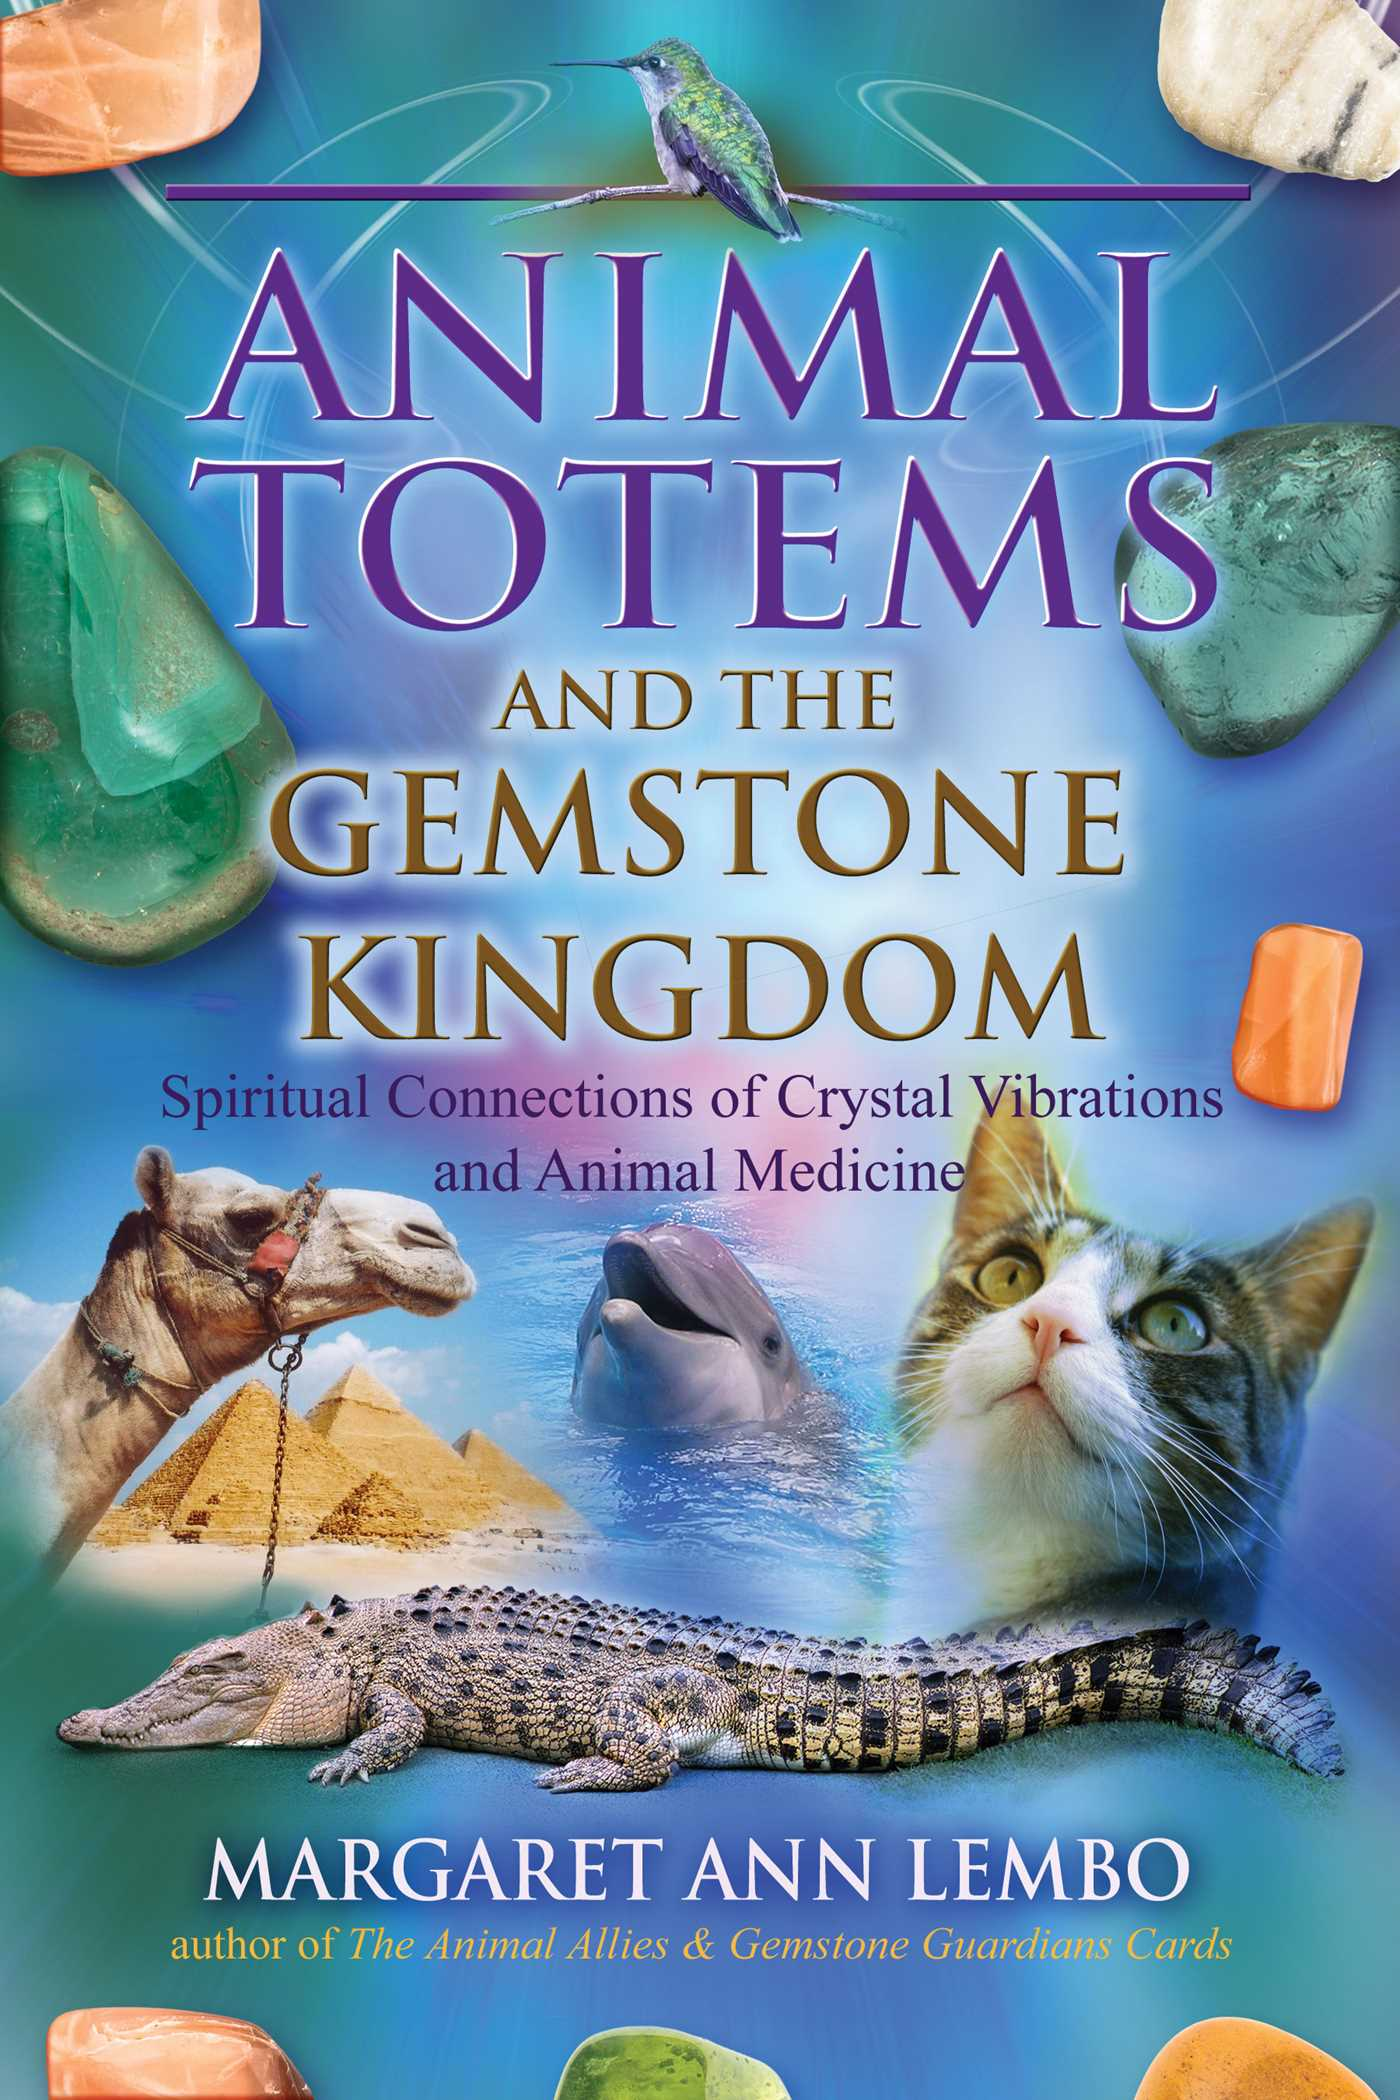 Animal totems and the gemstone kingdom 9781844097425 hr